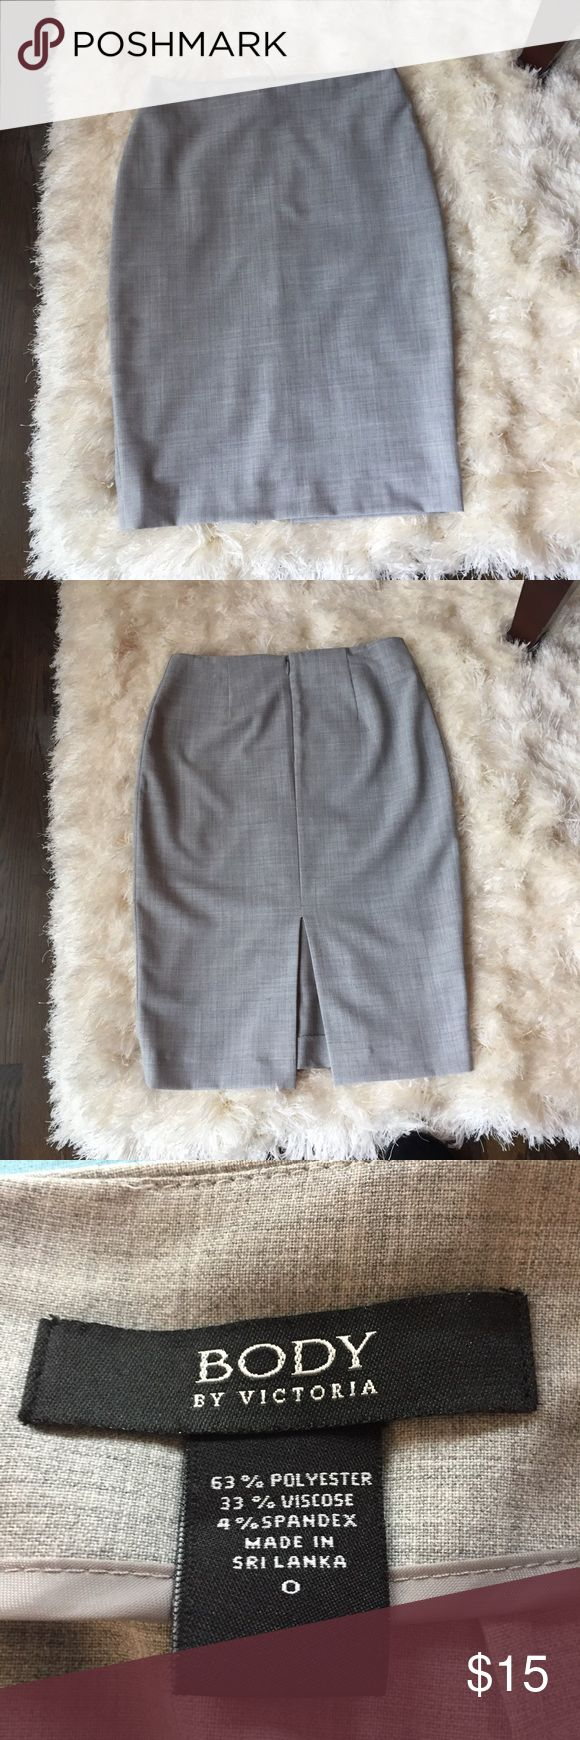 "Victoria's Secrets gray  pencil skirt size 0. Victoria's Secret, Body by Victoria grey pencil skirt size 0.Back slit.Waist measures 27"", length is 23"". Like new. Victoria's Secret Skirts Pencil"